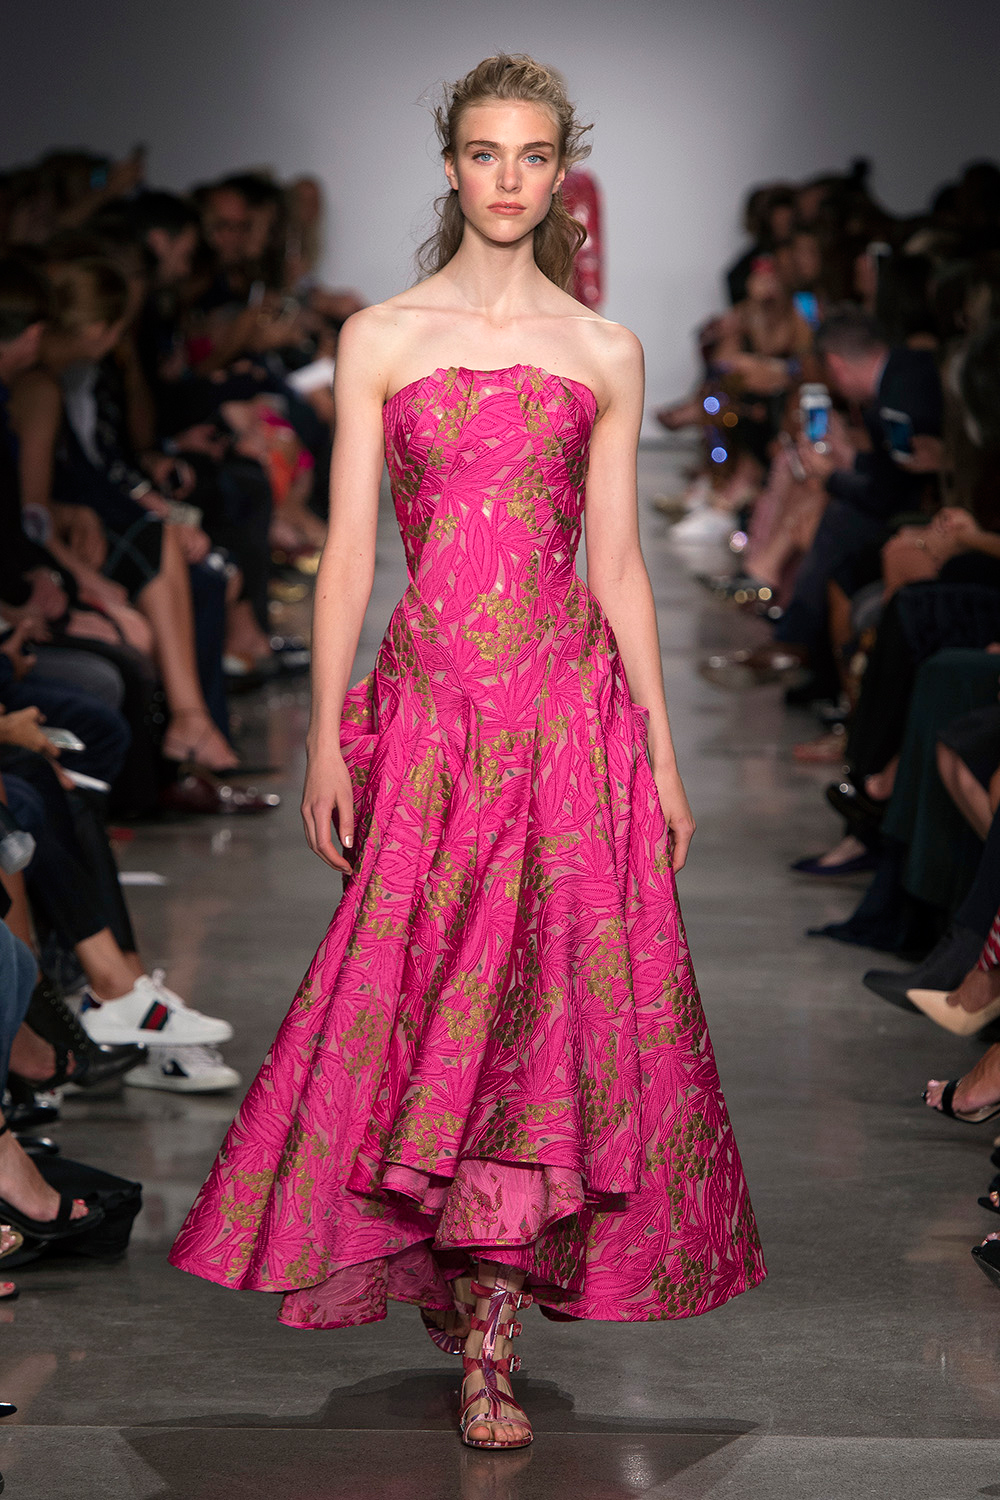 Look 34: Pink and Antique Gold Dress